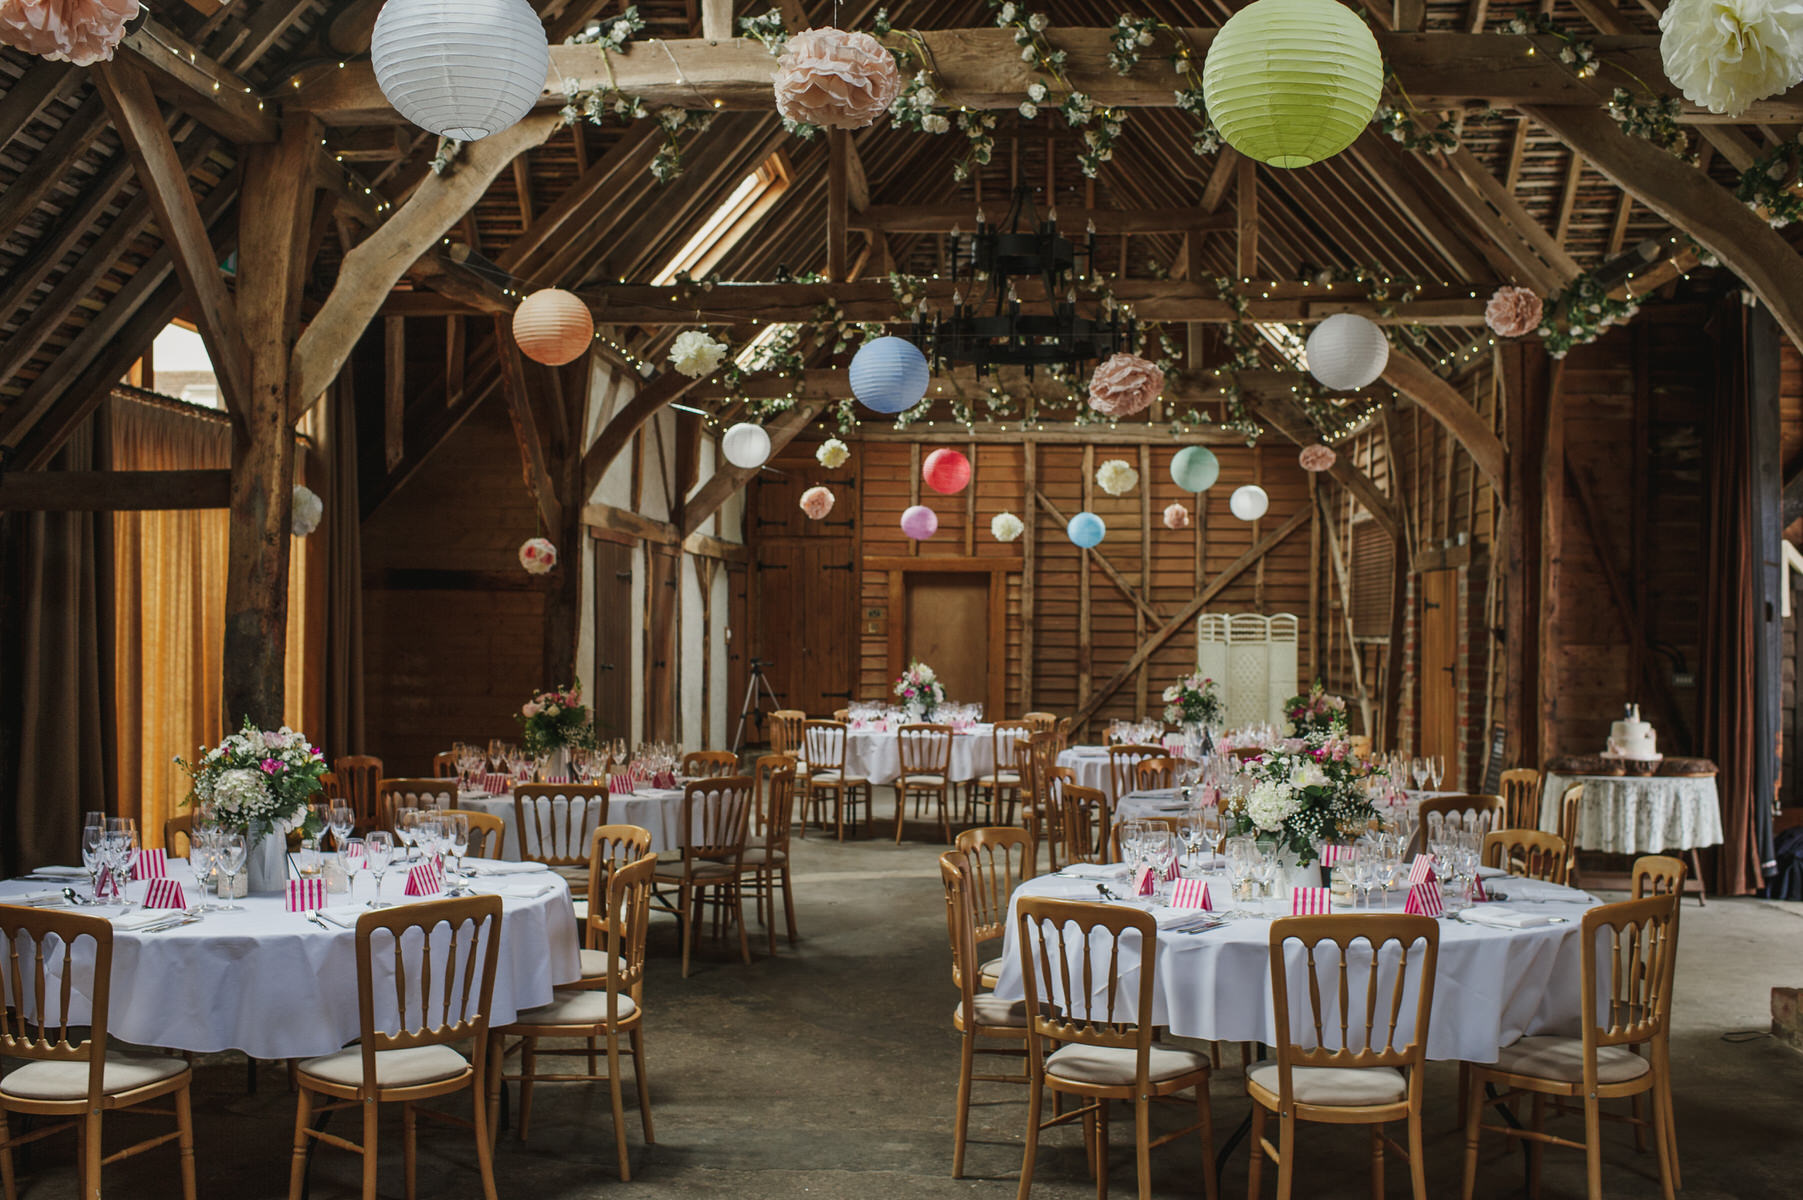 decoarted barn DIY Herons Farm wedding